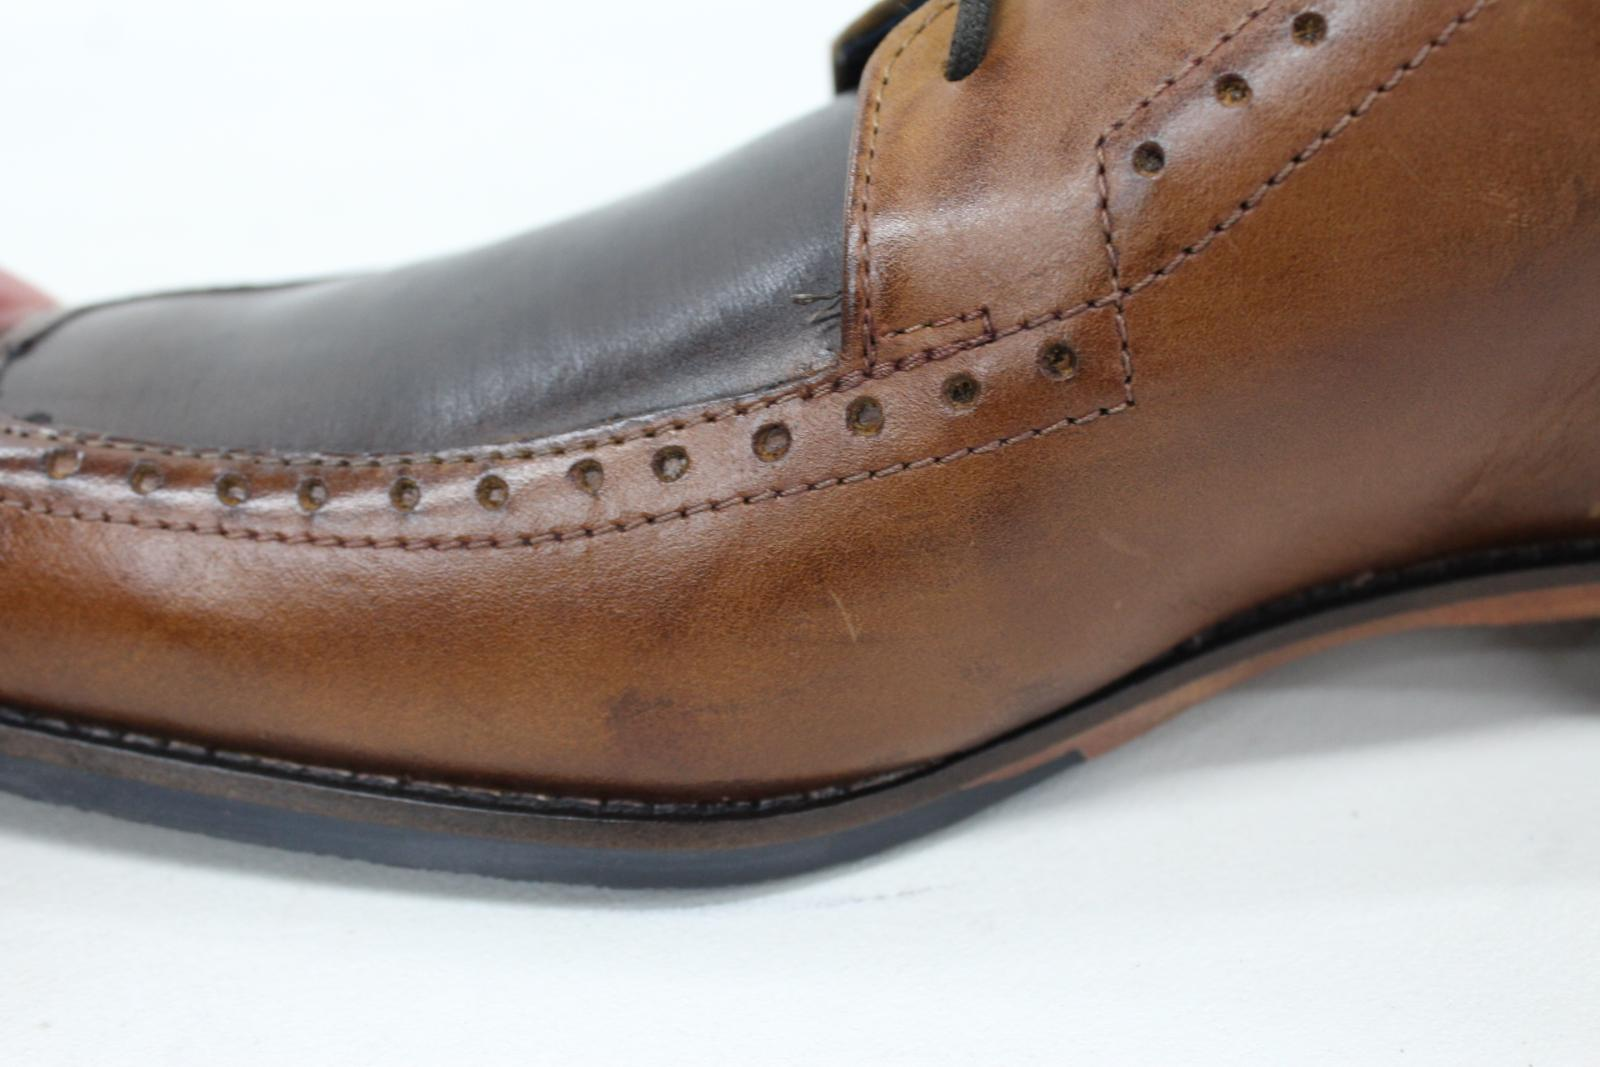 Goodwin-Smith-Homme-Knowle-deux-tons-marron-clair-Tablier-En-Cuir-Derby-Chaussures-UK8-Neuf miniature 9